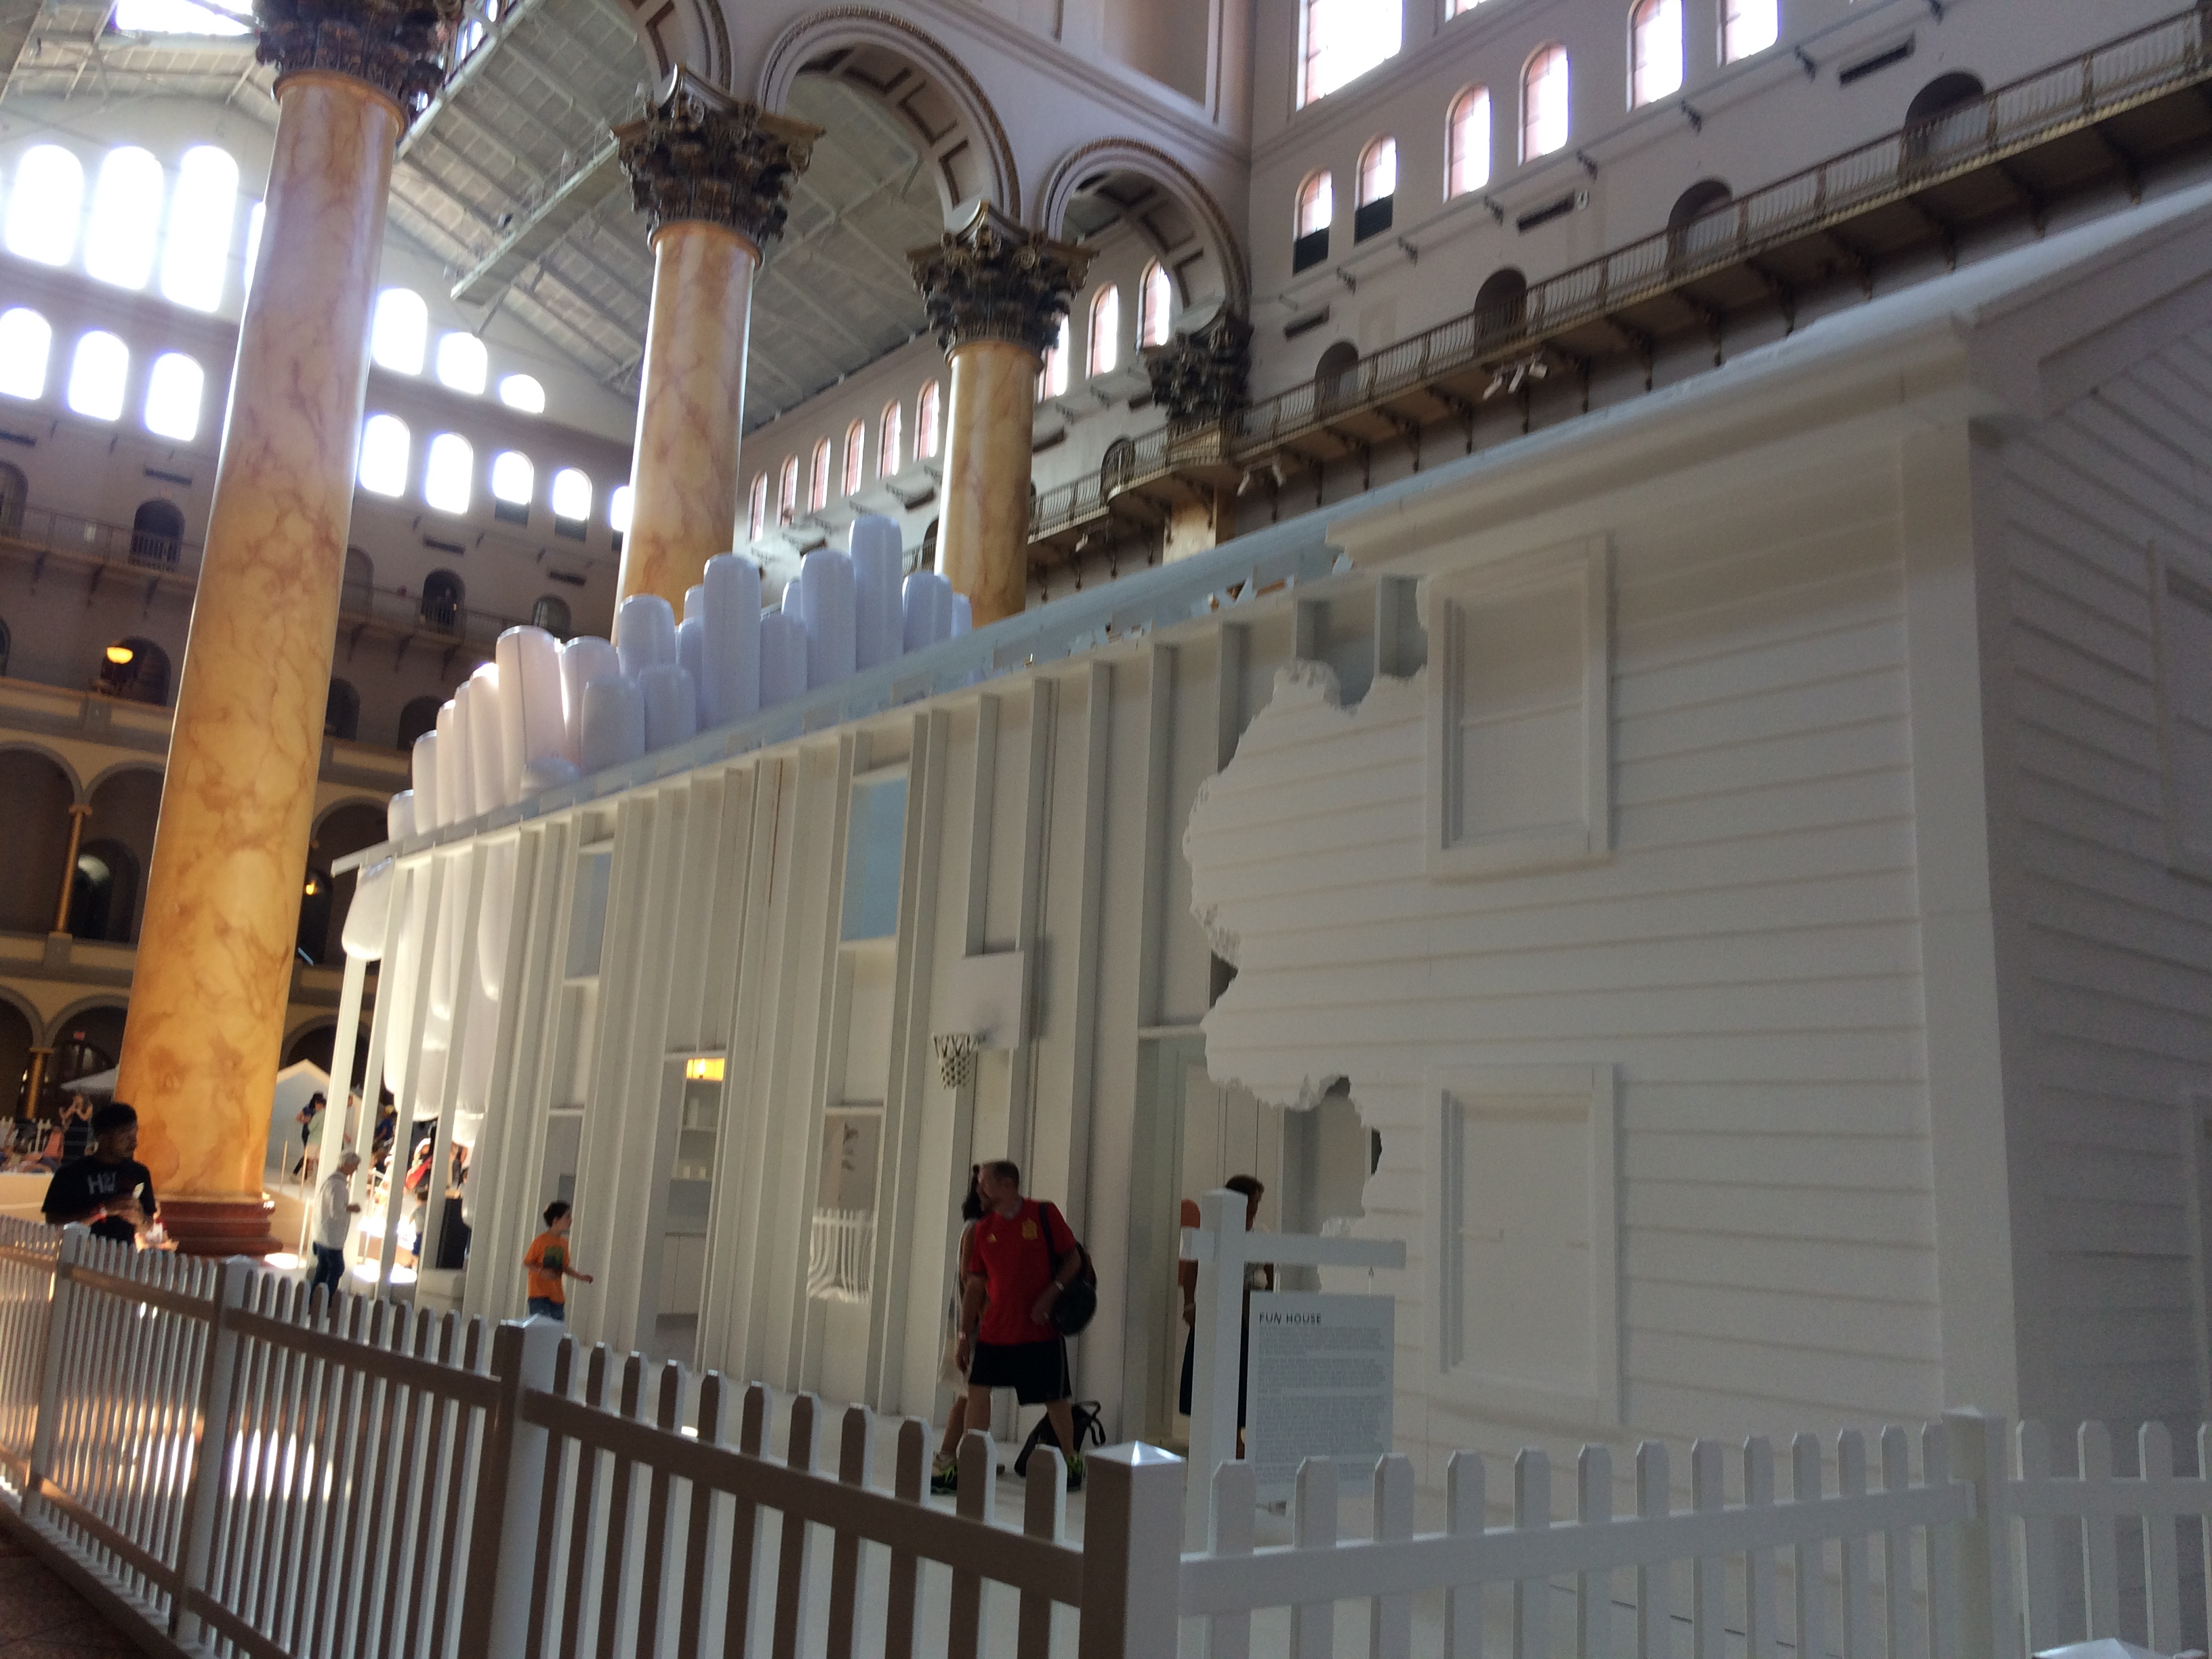 Funhouse (by Snarkitecture) at the National Building Museum